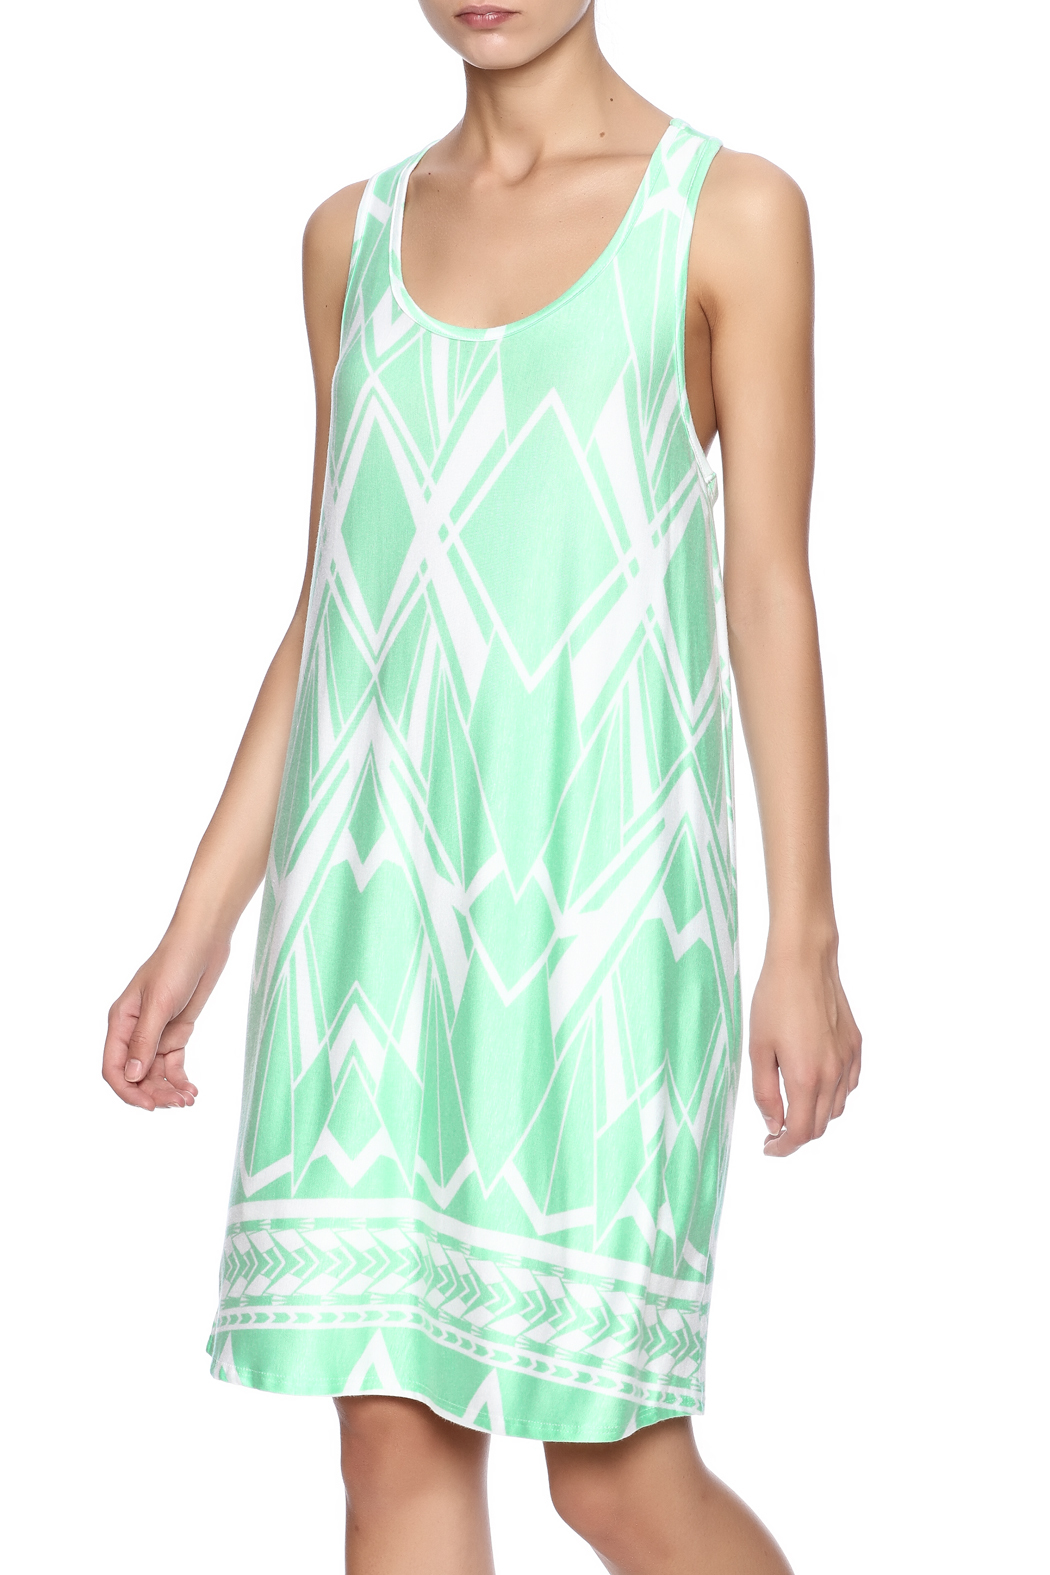 Fantastic Fawn Printed Mint Dress - Main Image